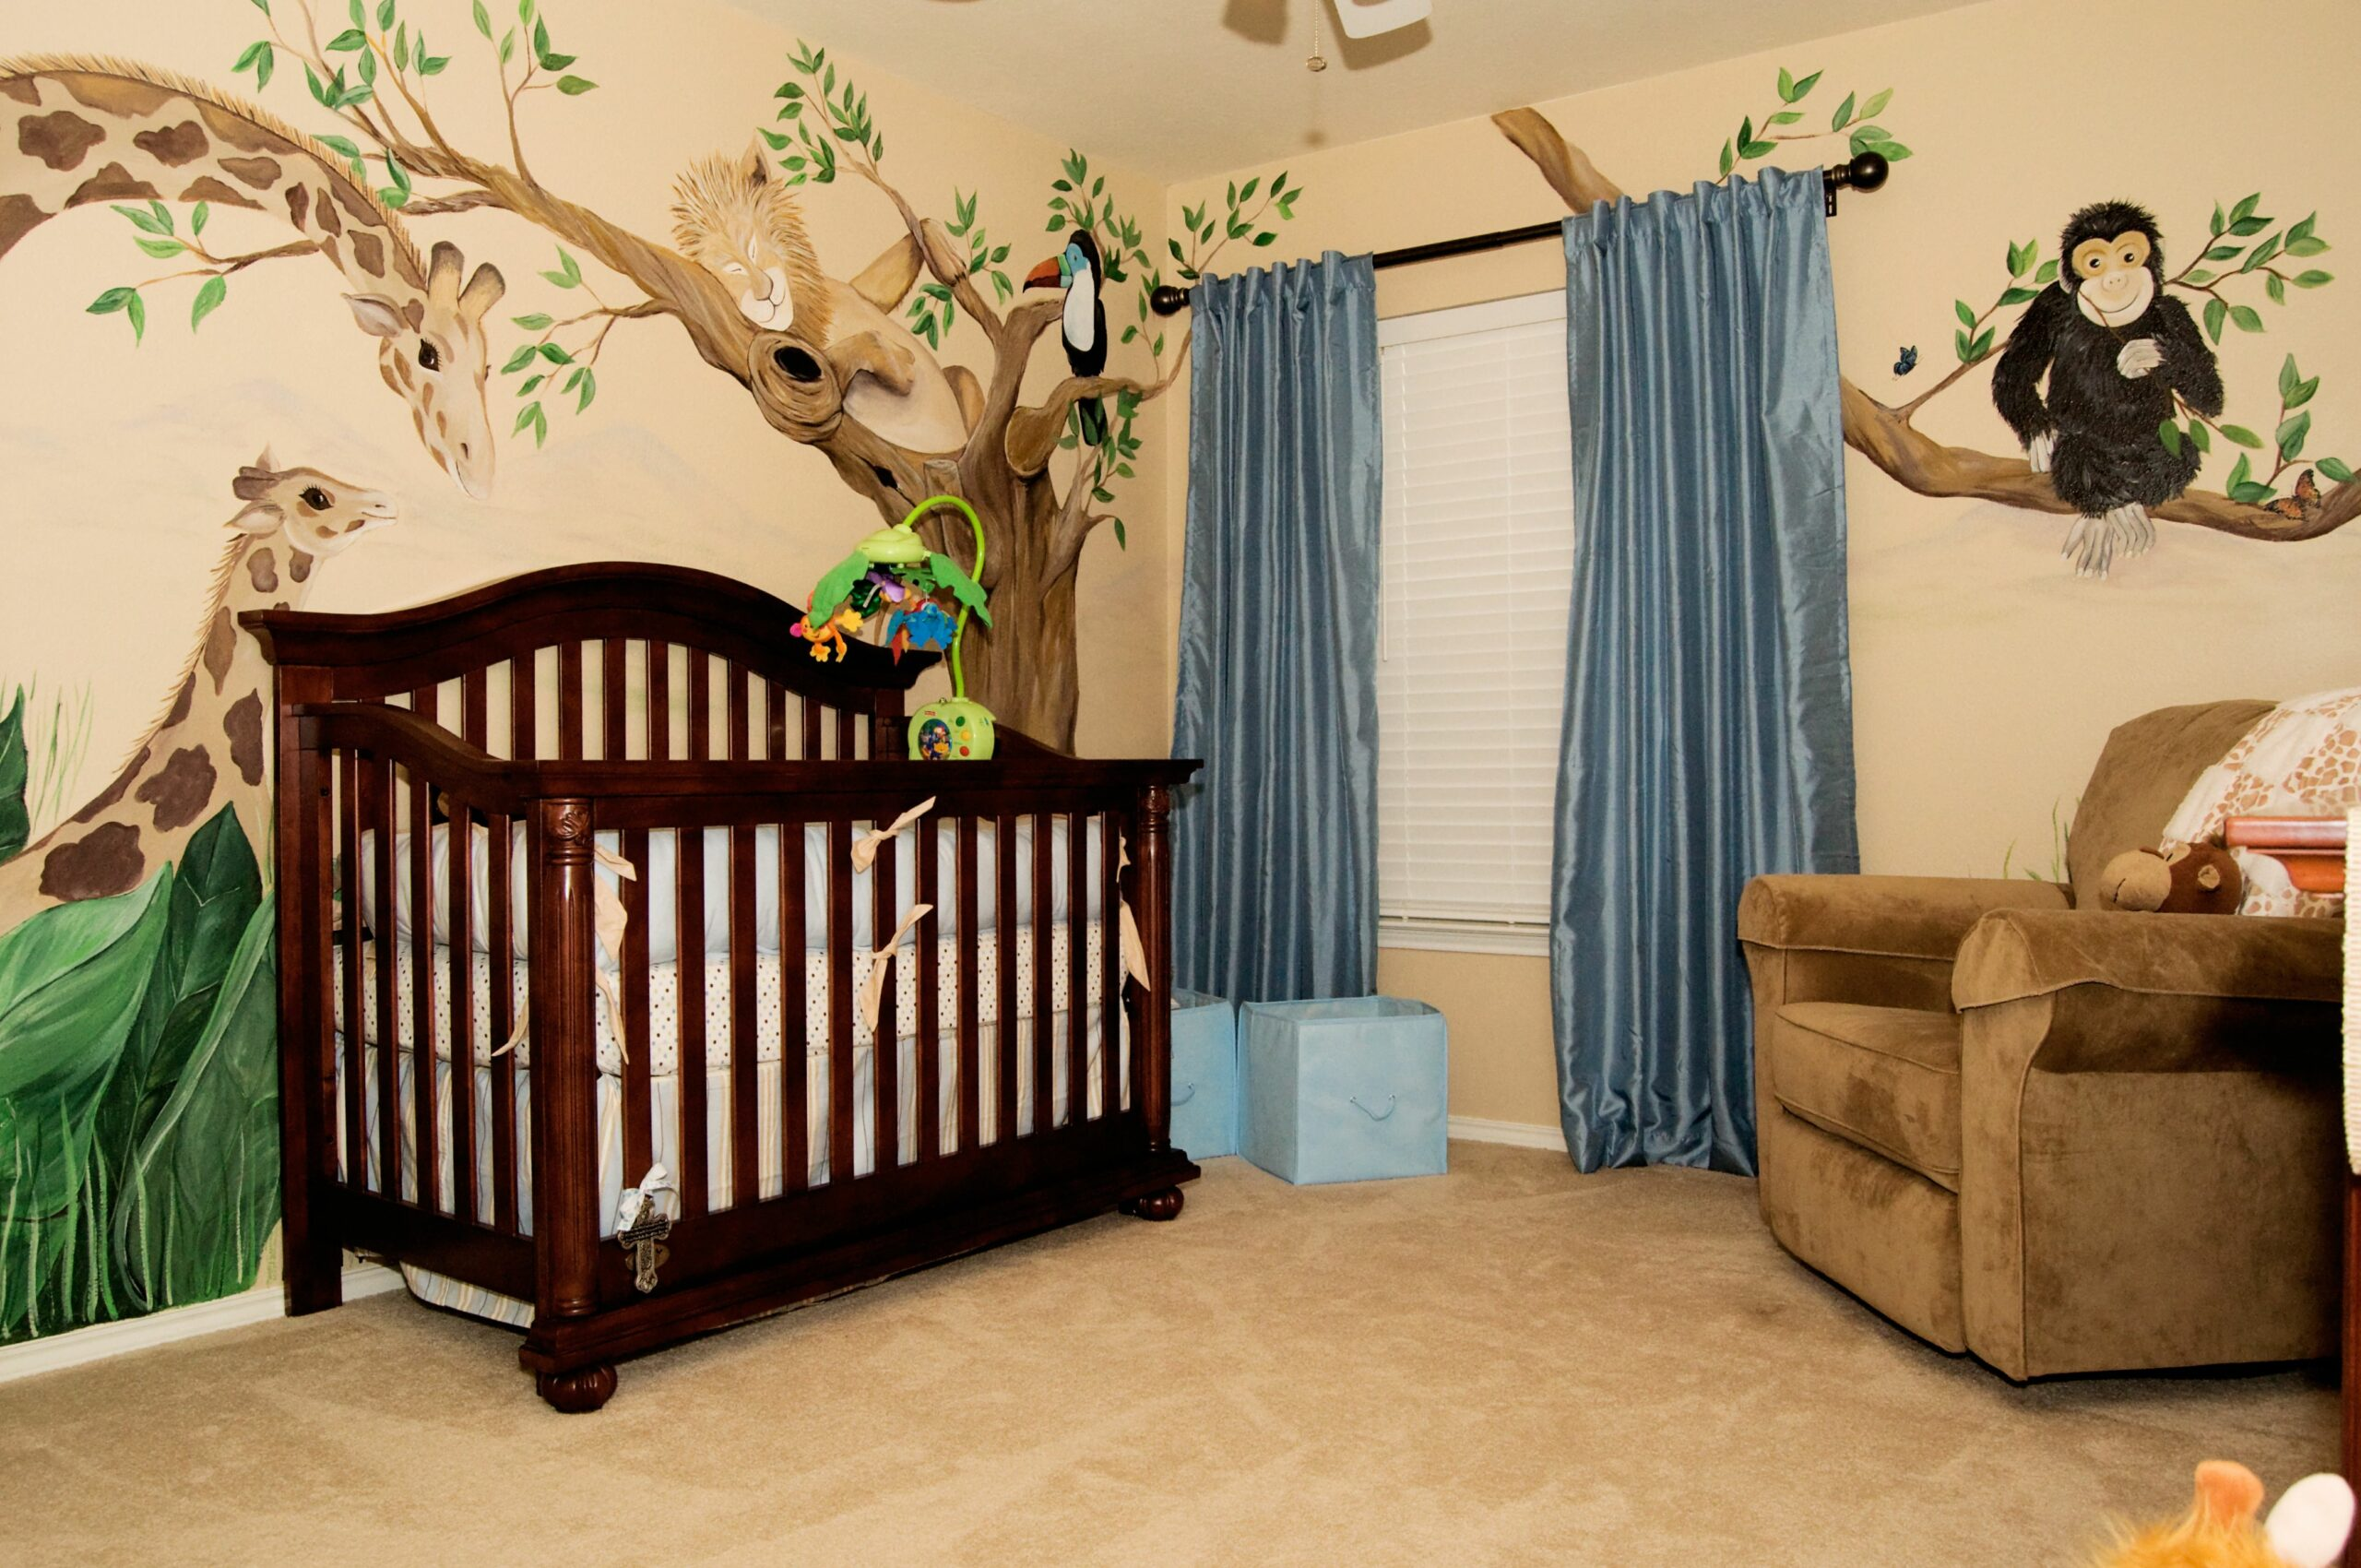 Adorable Baby Room Dcor Ideas Jungle Themed Bedroom Atmosphere ...